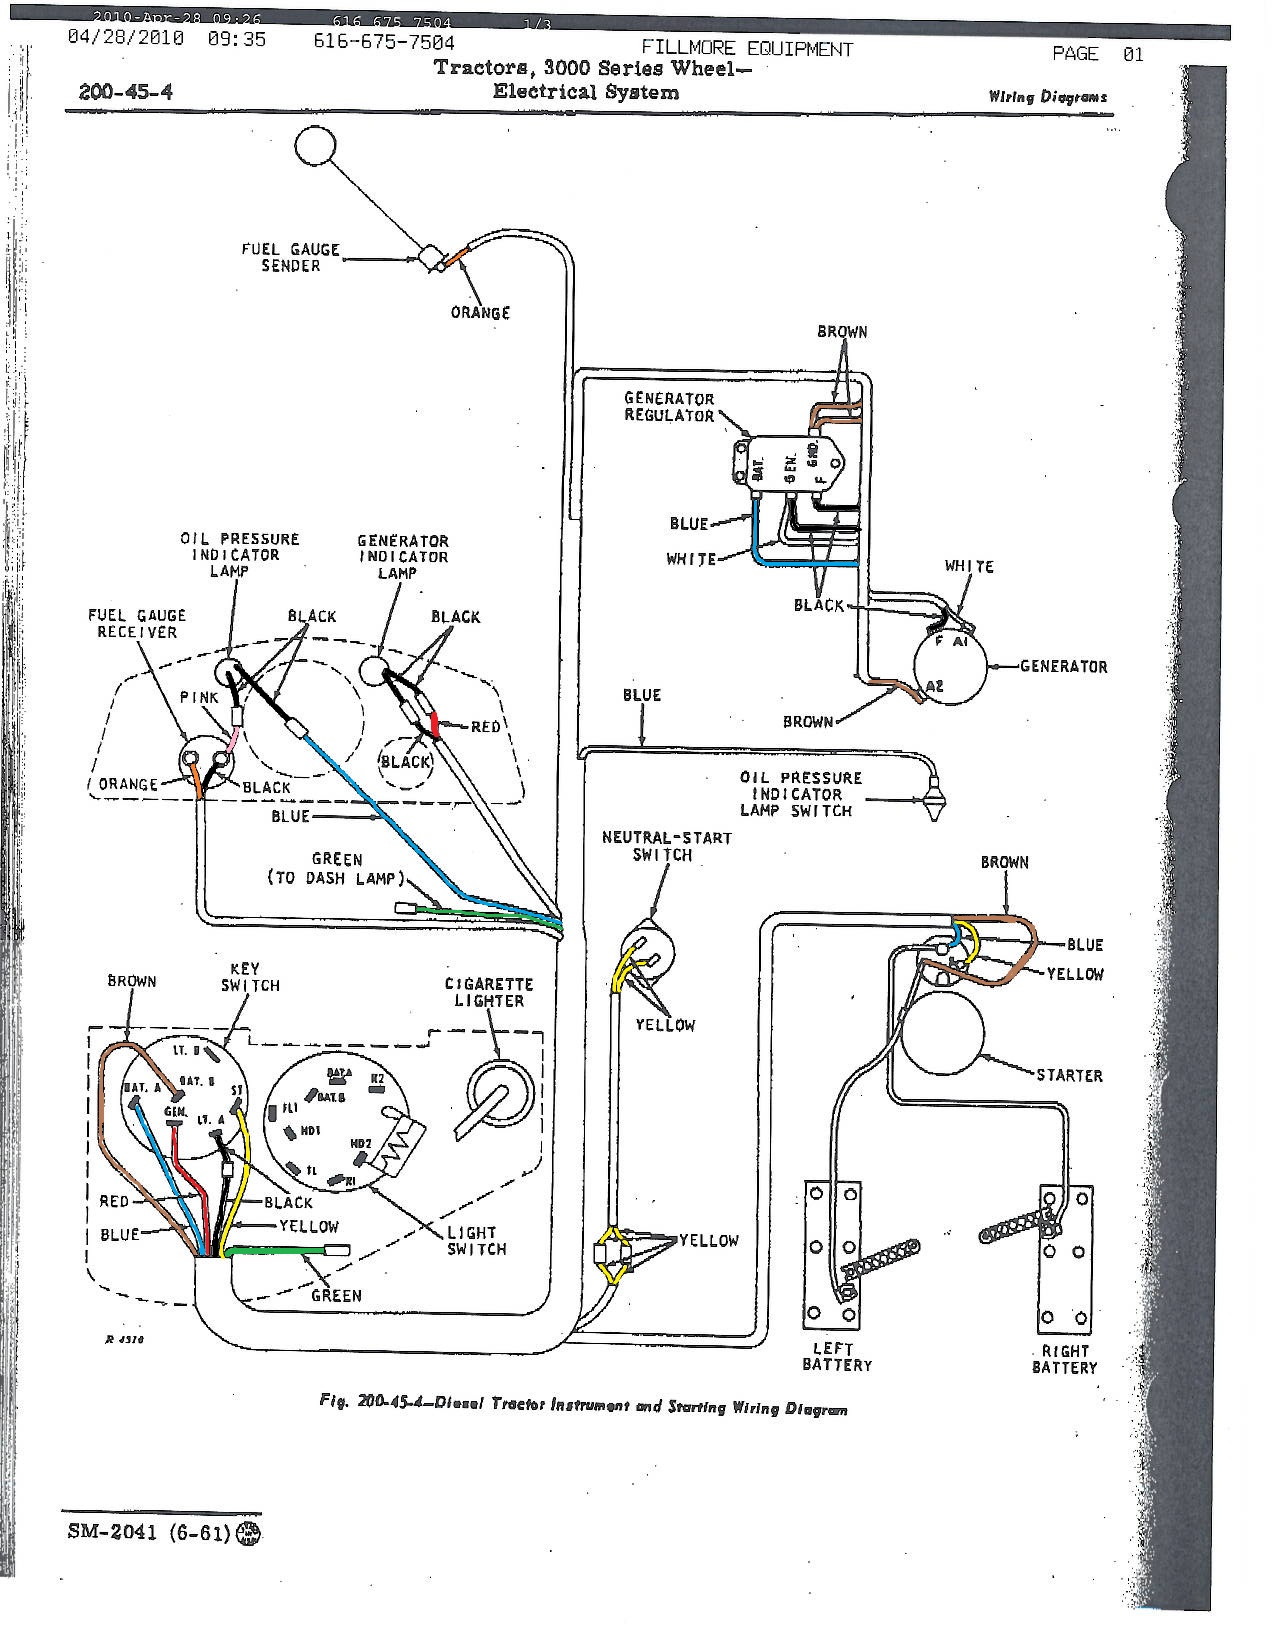 lincoln compact wiring diagram lincoln printable wiring john deere l120 wiring diagram rotork valve wiring diagrams car source